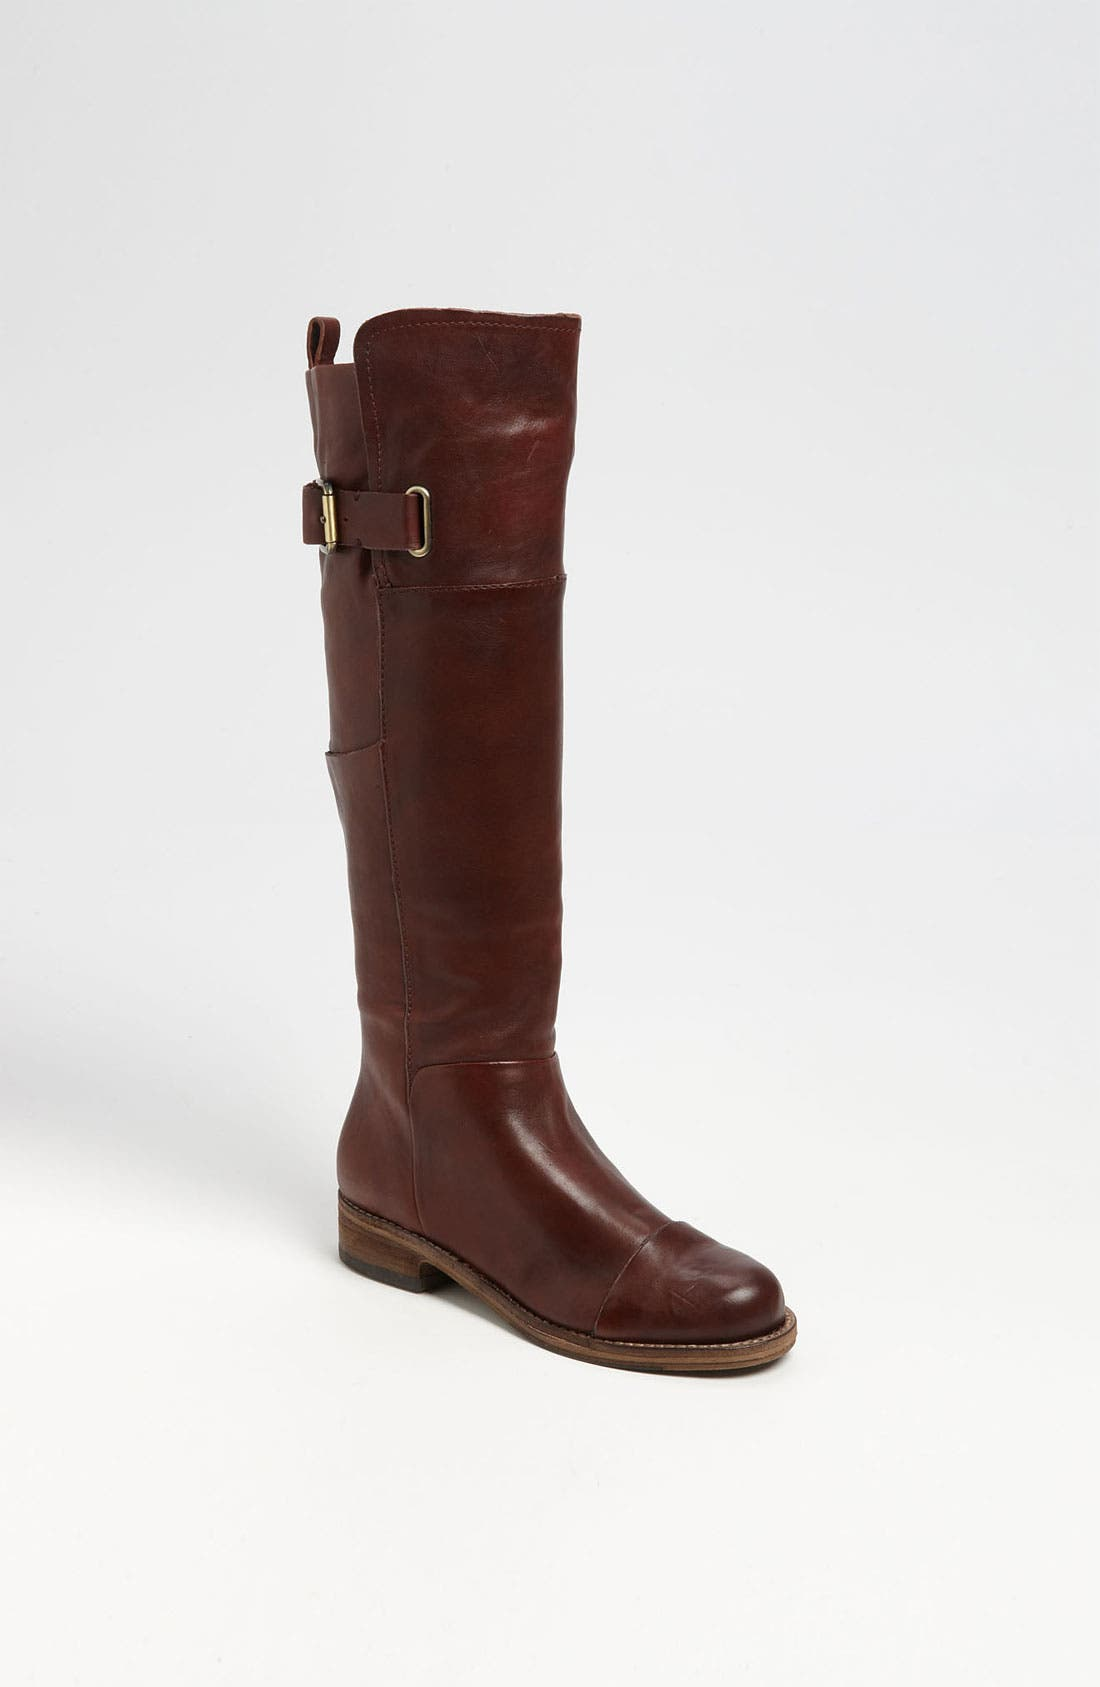 Alternate Image 1 Selected - Belle by Sigerson Morrison 'Irene' Boot